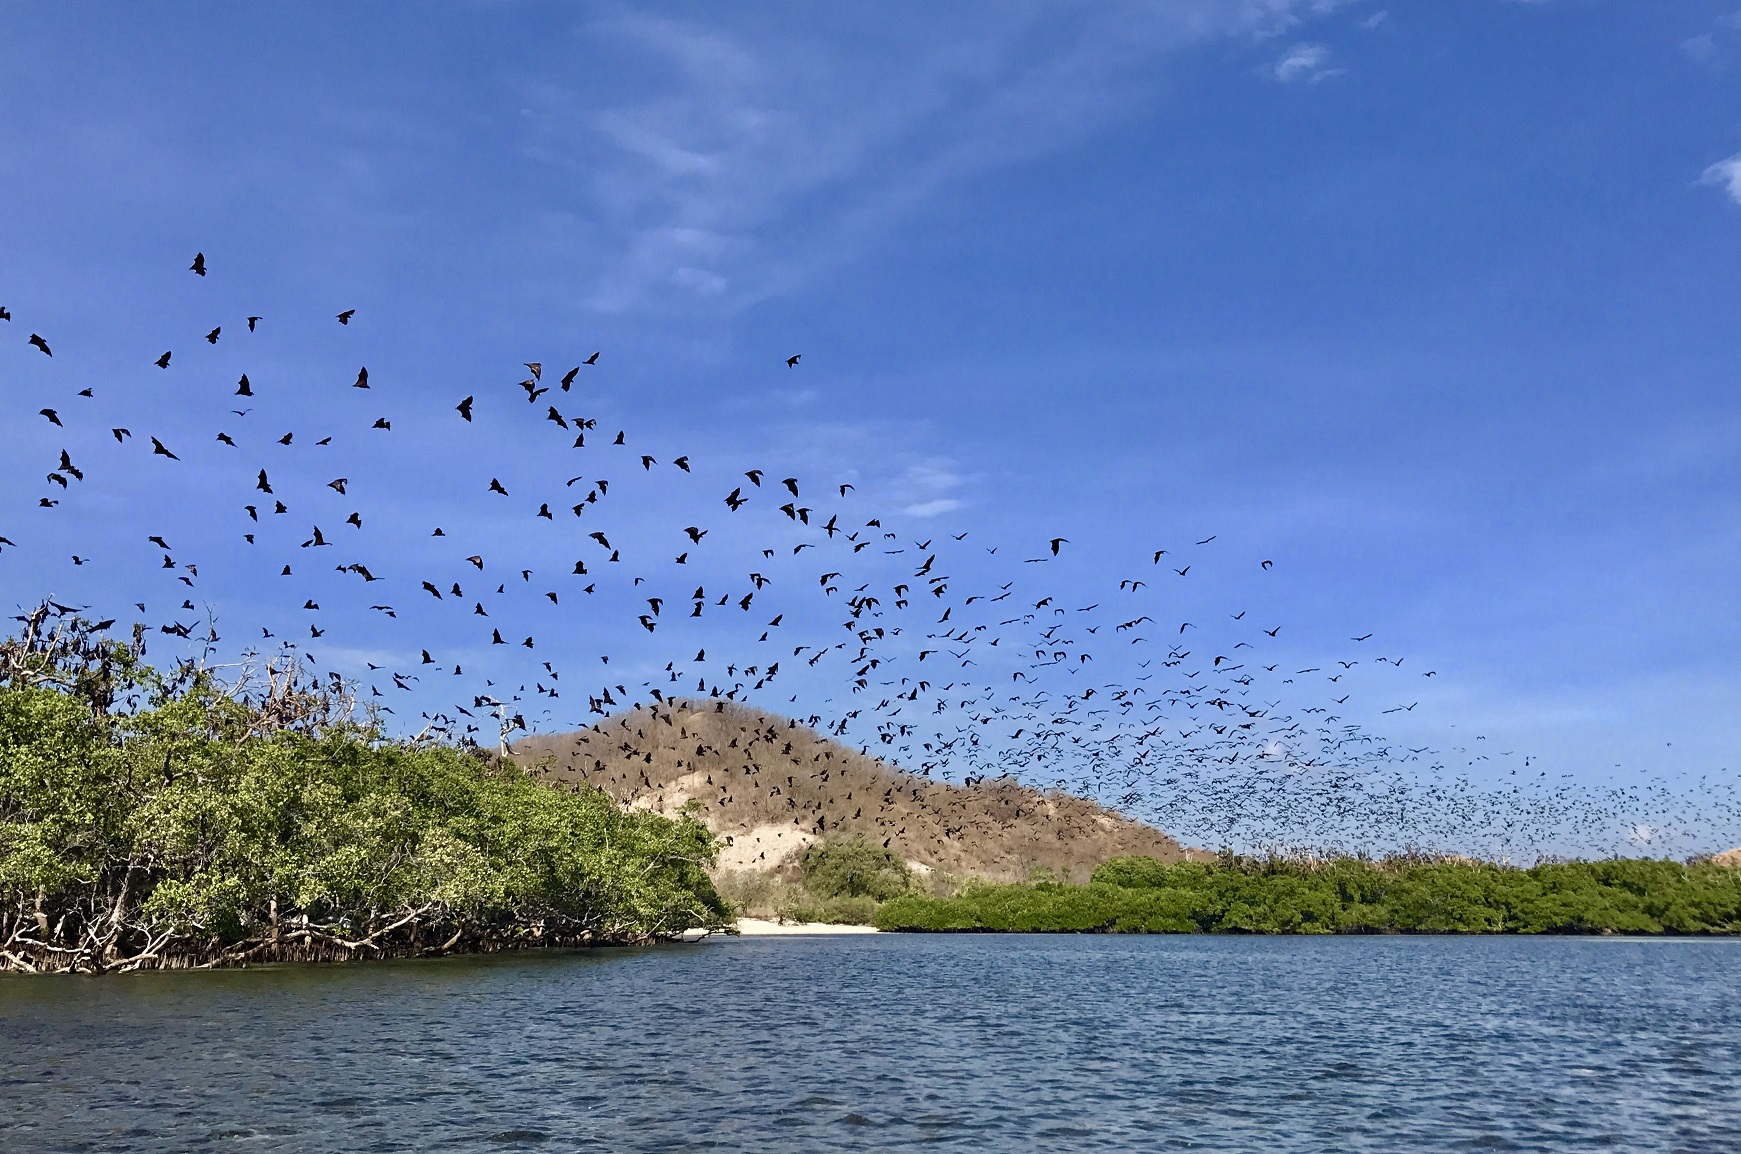 The island of Ontoloe is a habitat for thousands of giant bats